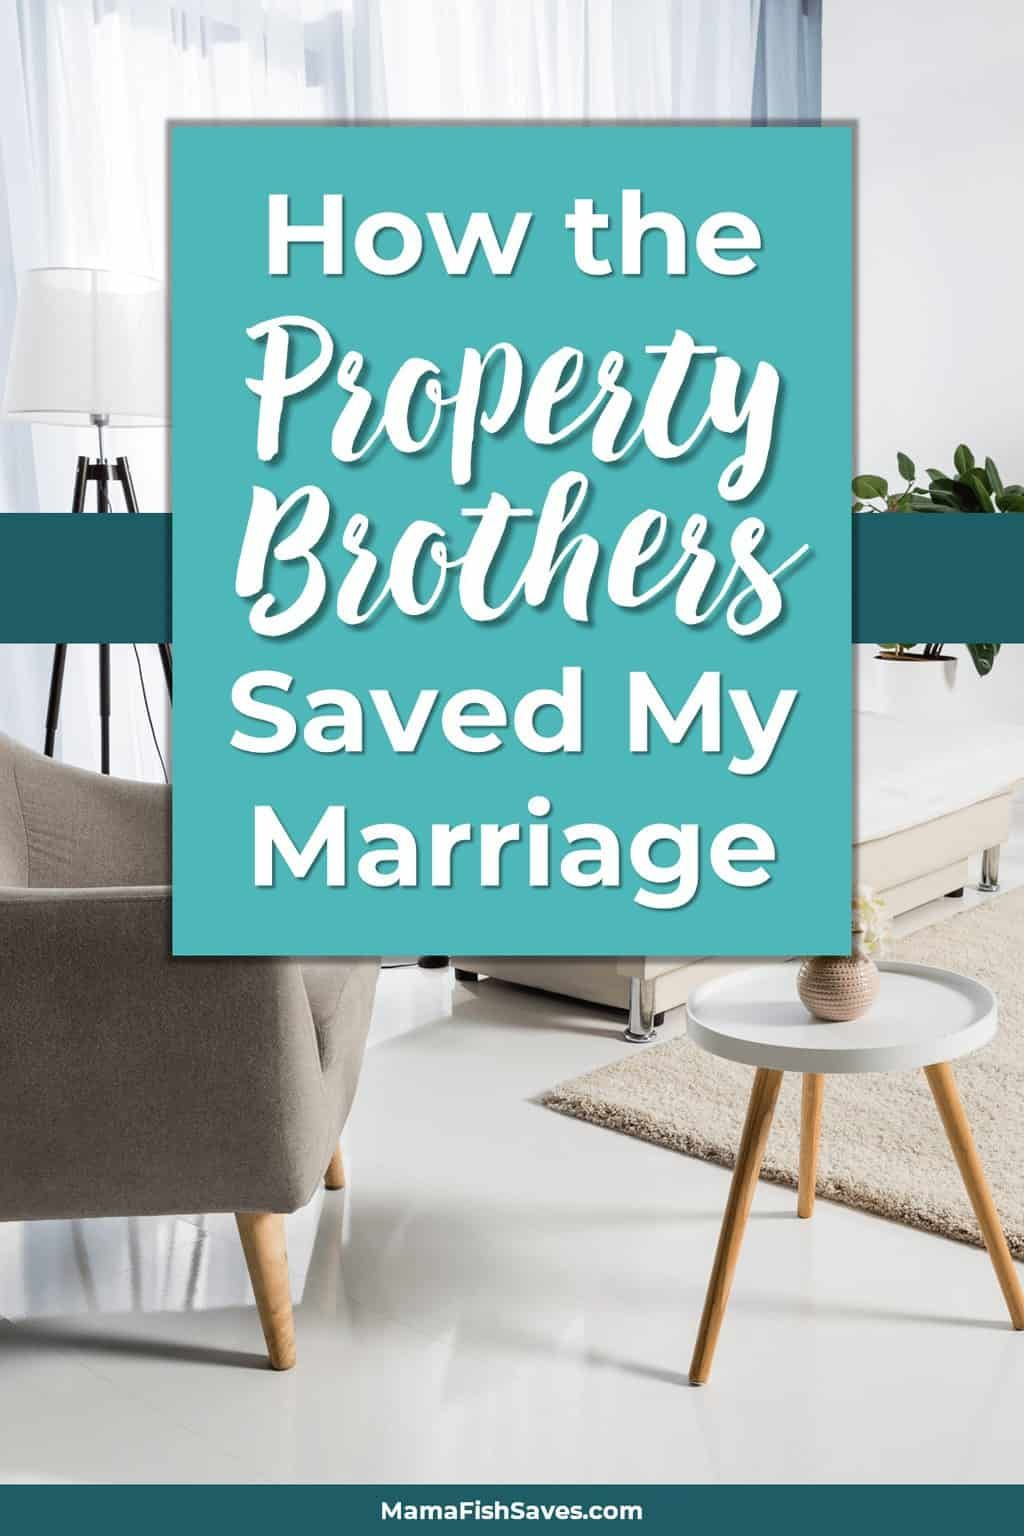 How Property Brothers Saved My Marriage